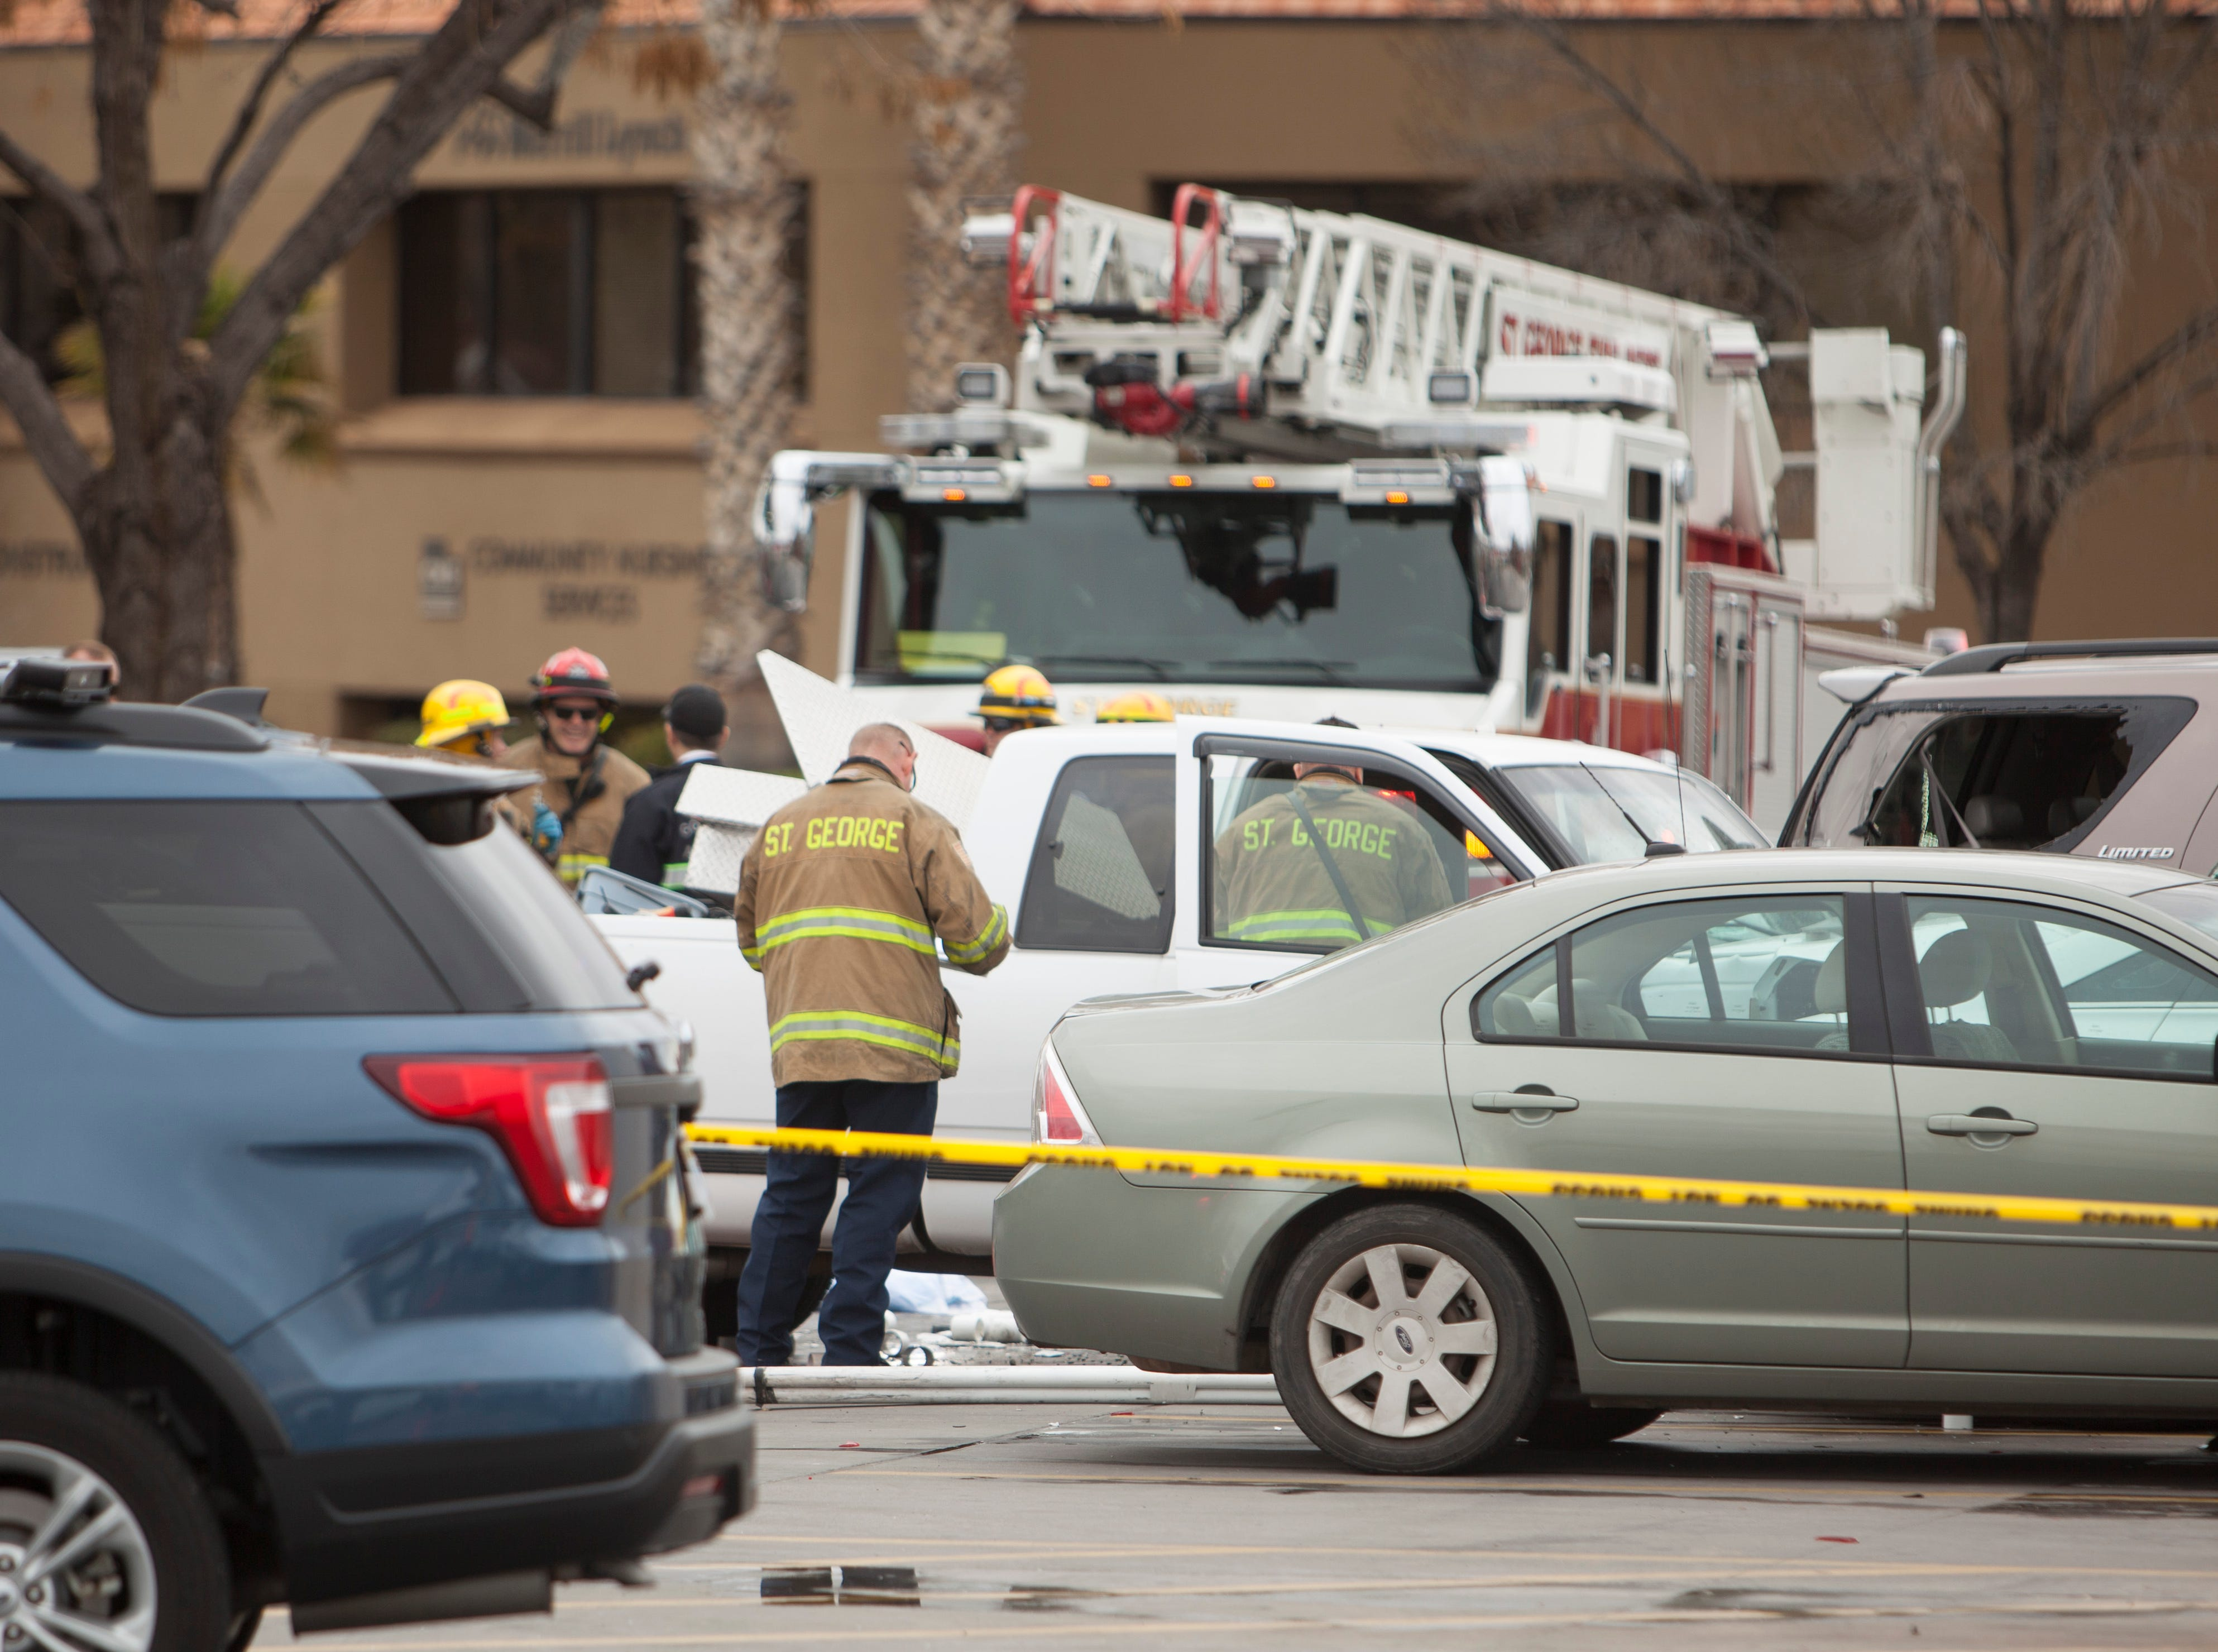 The St. George Police and Fire departments respond to an accident at Maverik near River Road Tuesday, March 12, 2019.